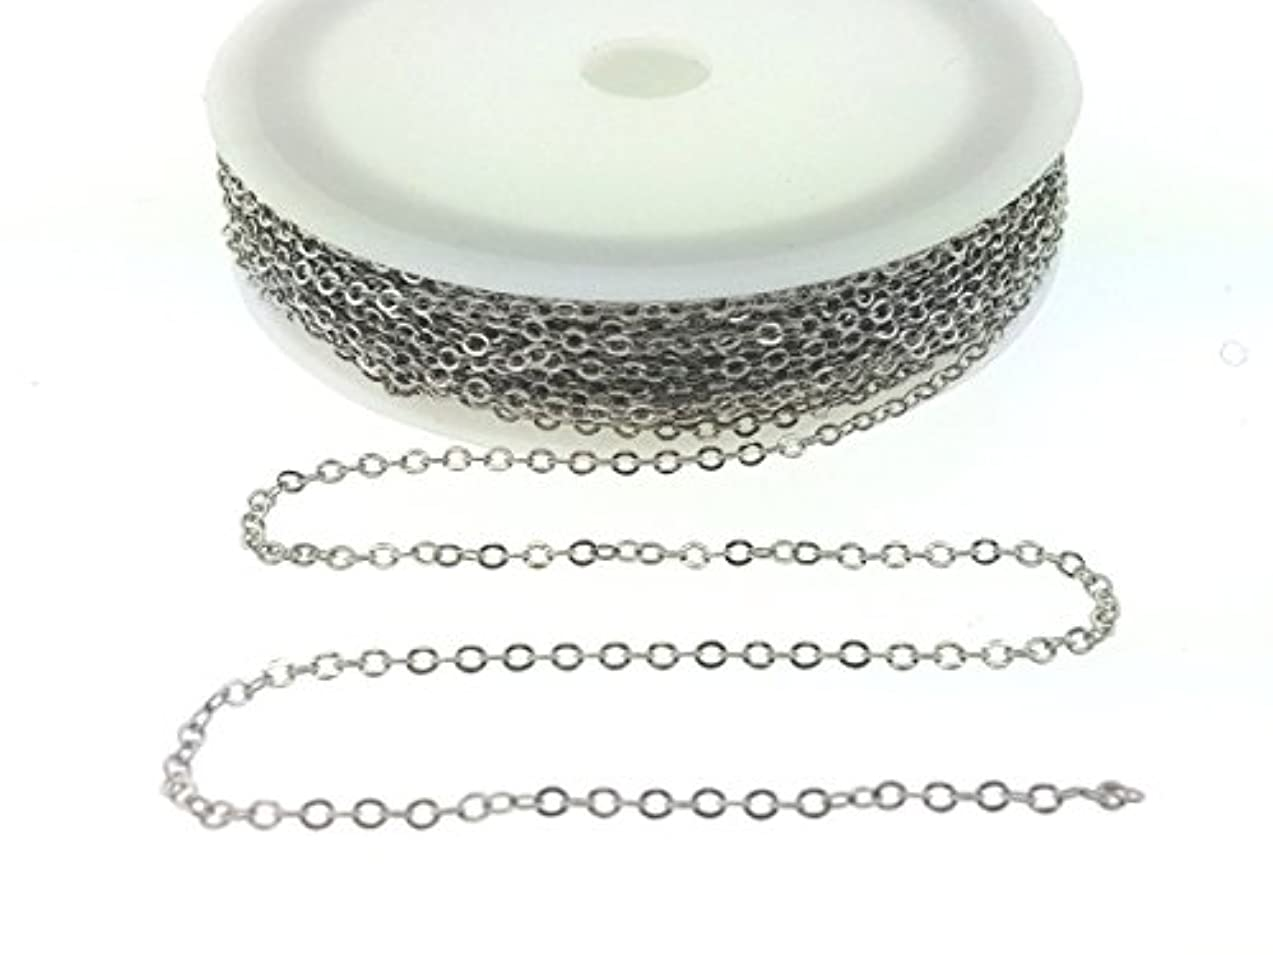 BeadsAndCrafts 32 Feet Pack, 7 Colors Available, Small Link Chain 2.1x1.7mm Dangling Chain, Antique Silver Plated Brass